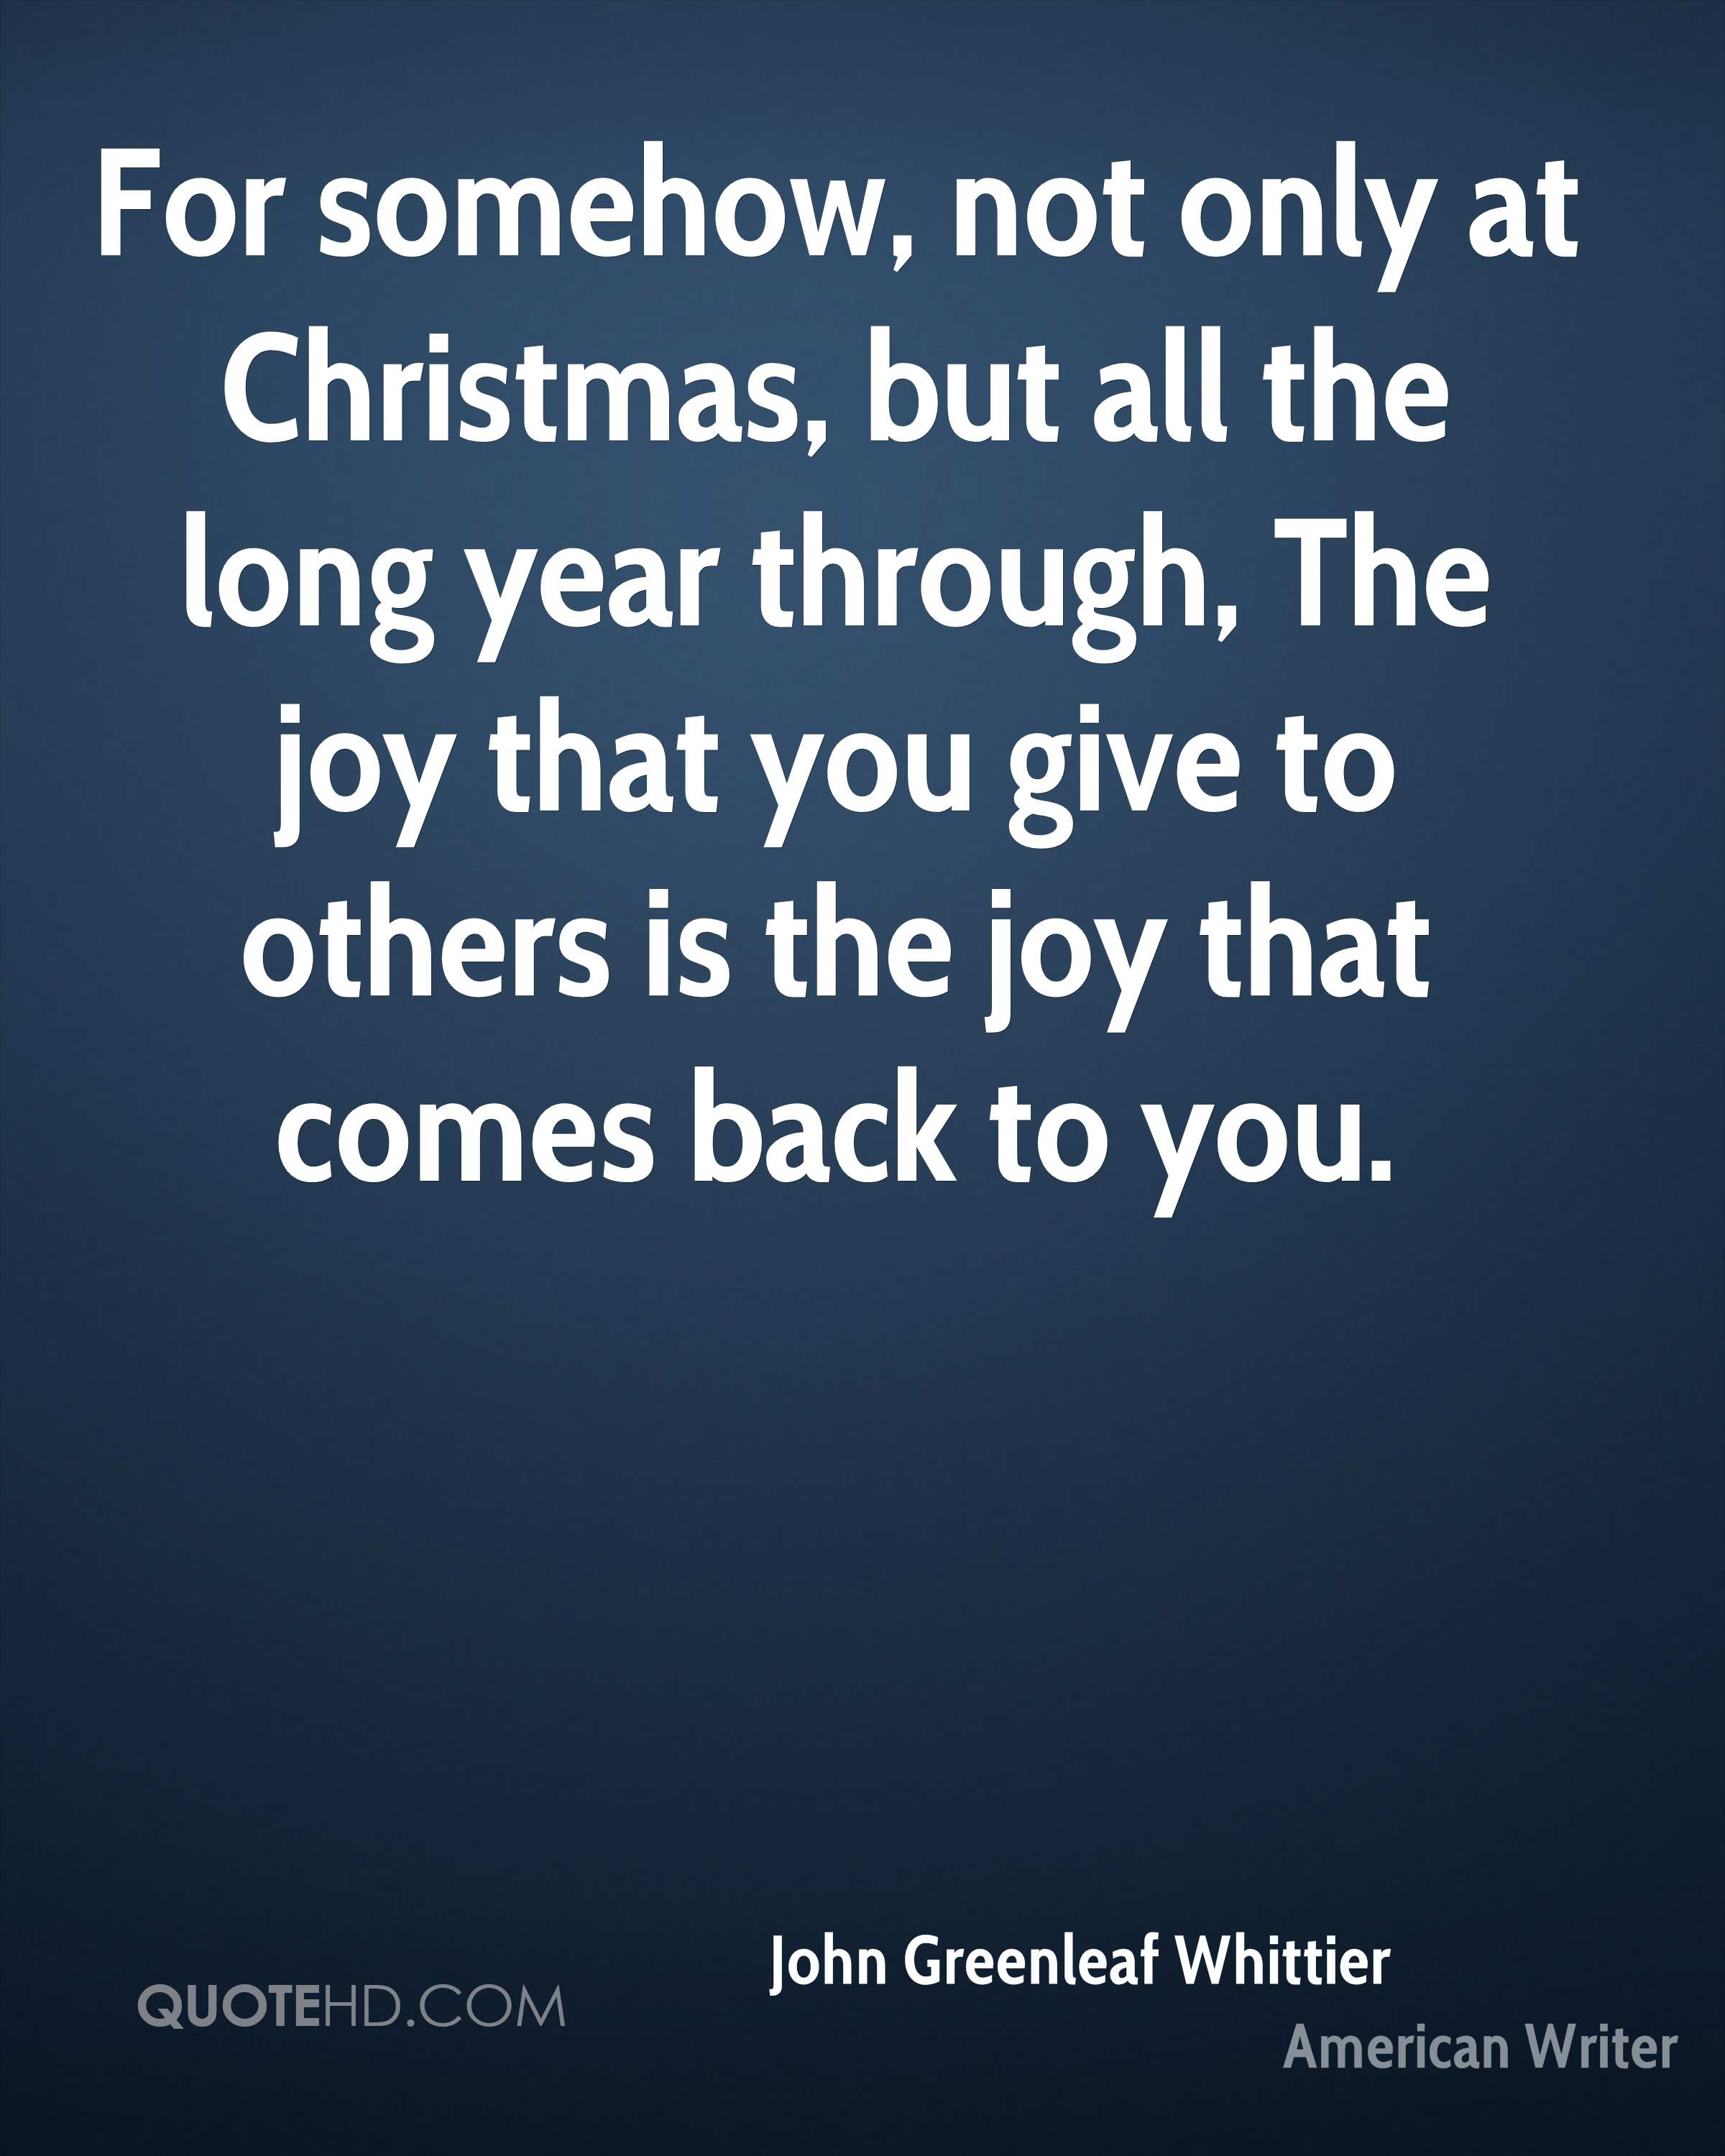 For somehow, not only at Christmas, but all the long year through, The joy that you give to others is the joy that comes back to you.